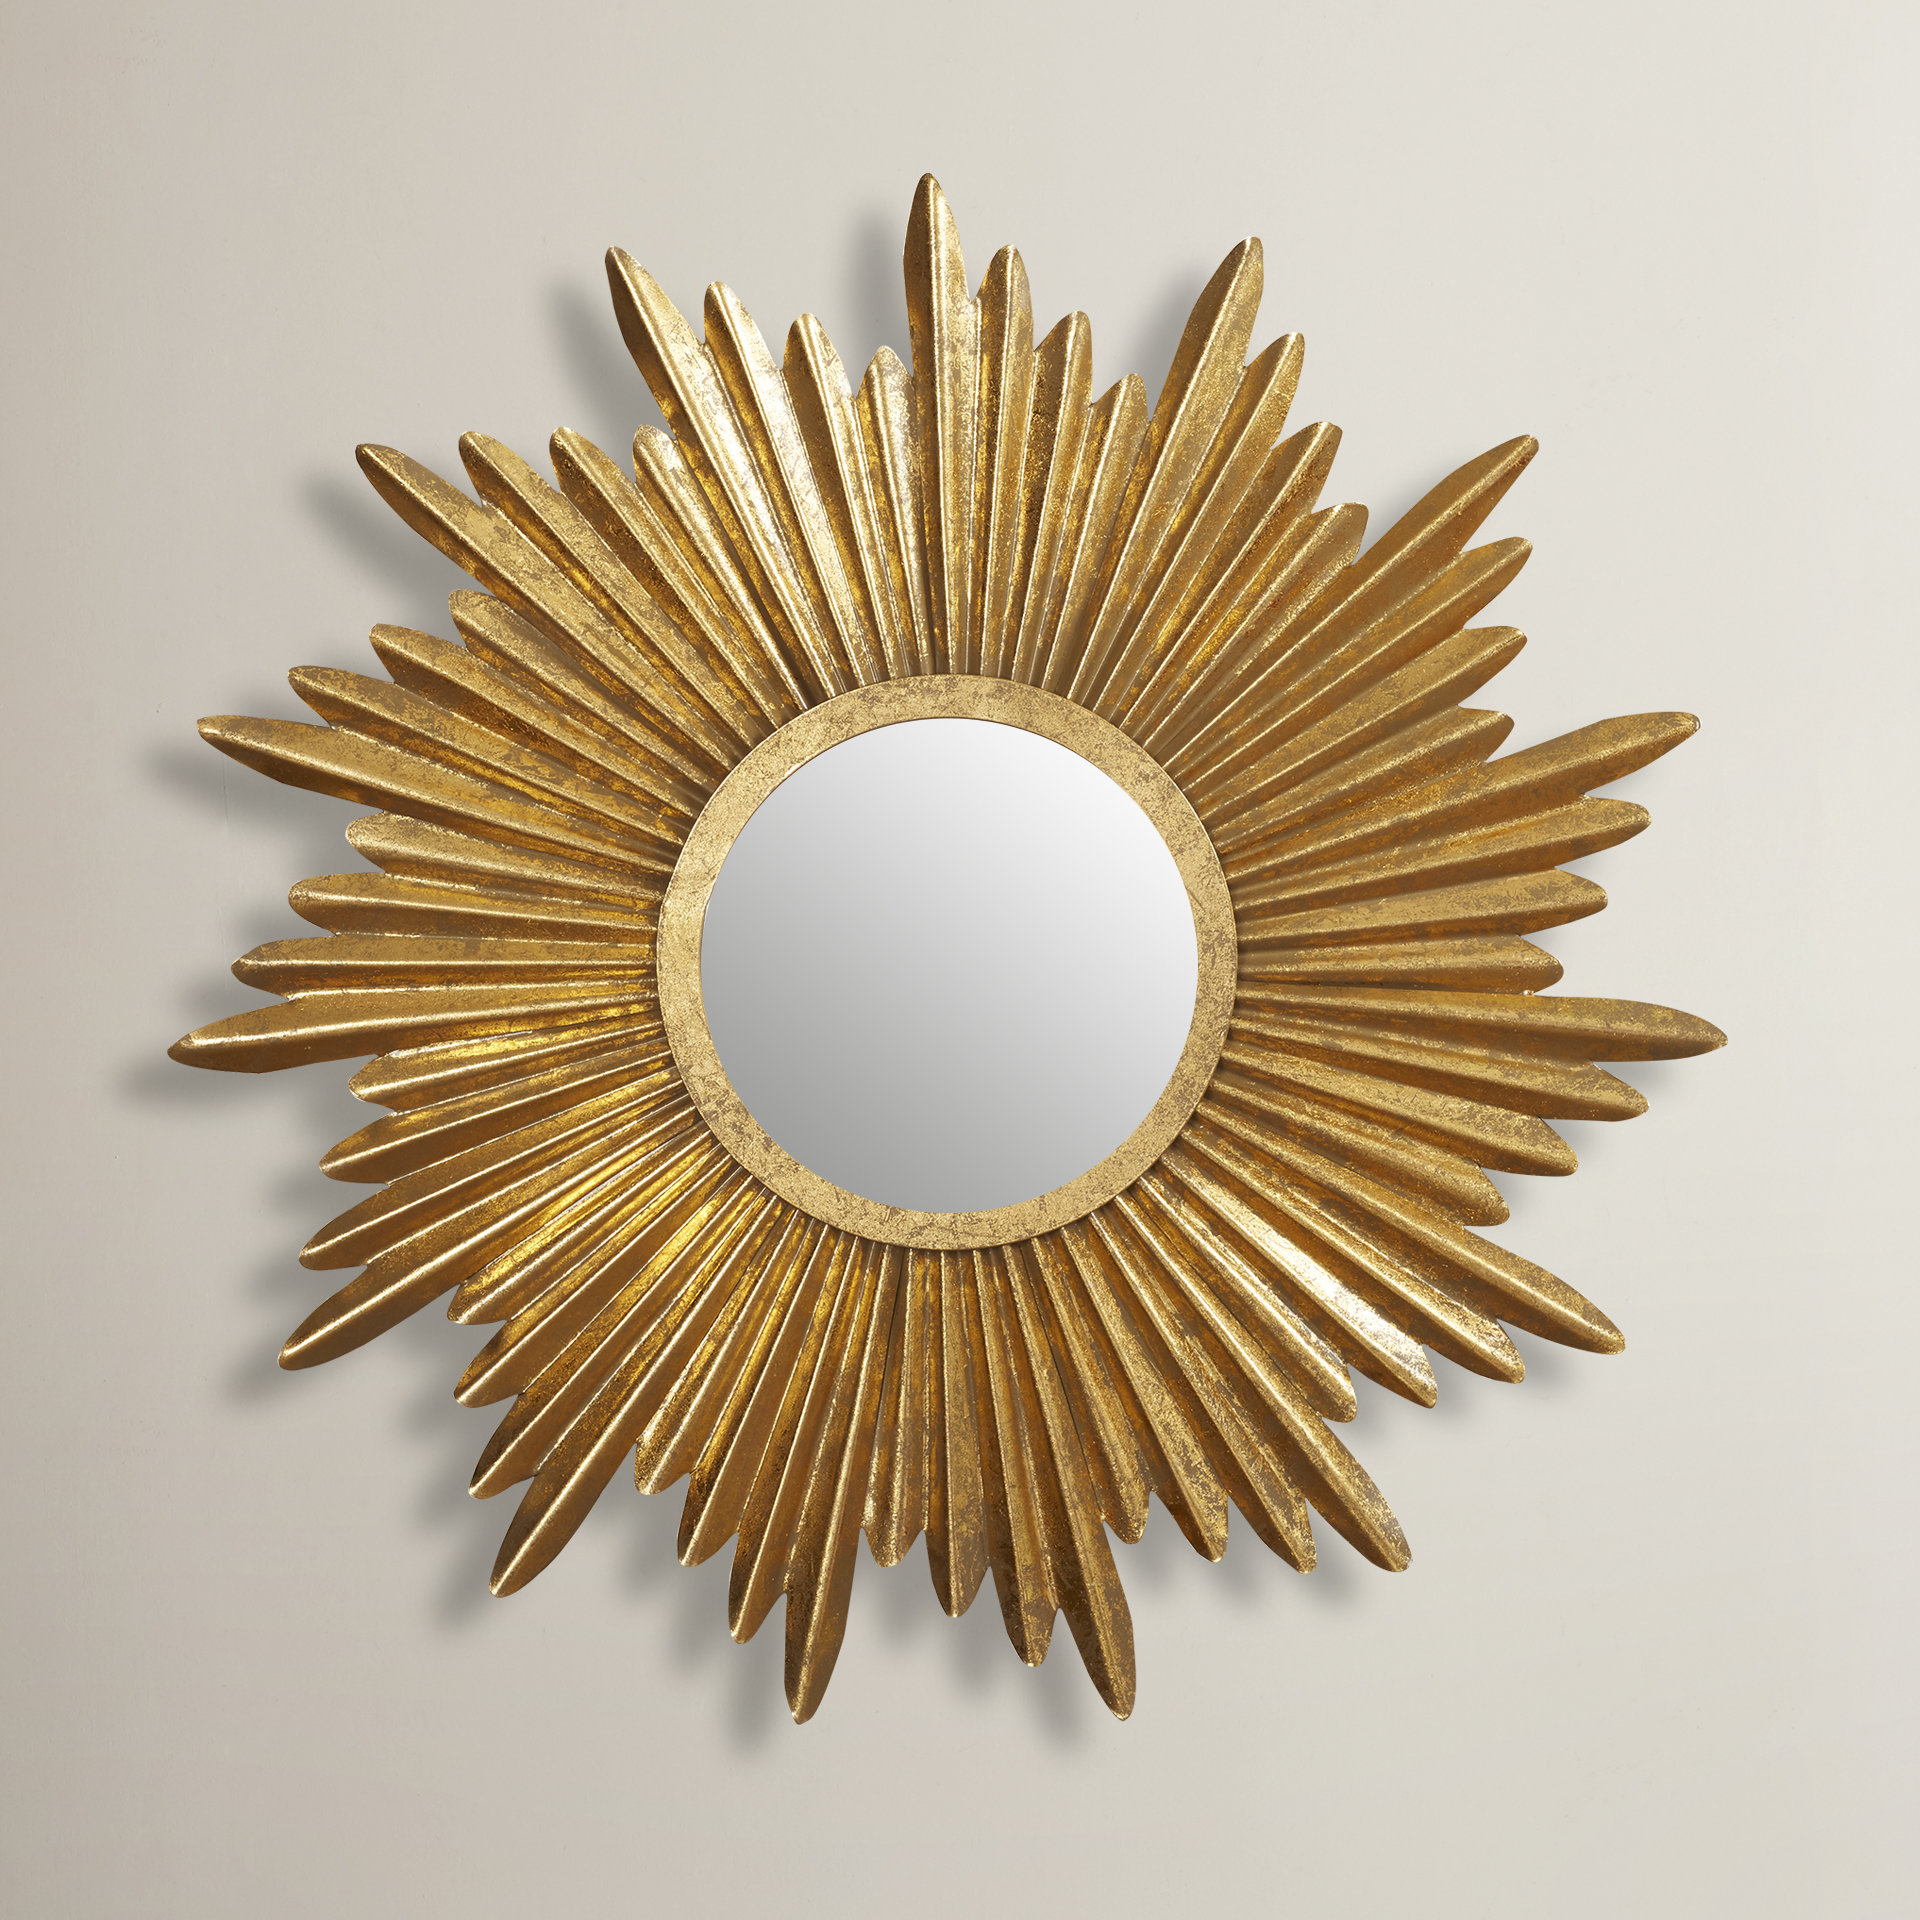 Sunburst Wall Mirrors You'll Love In 2019 | Wayfair Pertaining To Orion Starburst Wall Mirrors (Image 18 of 20)